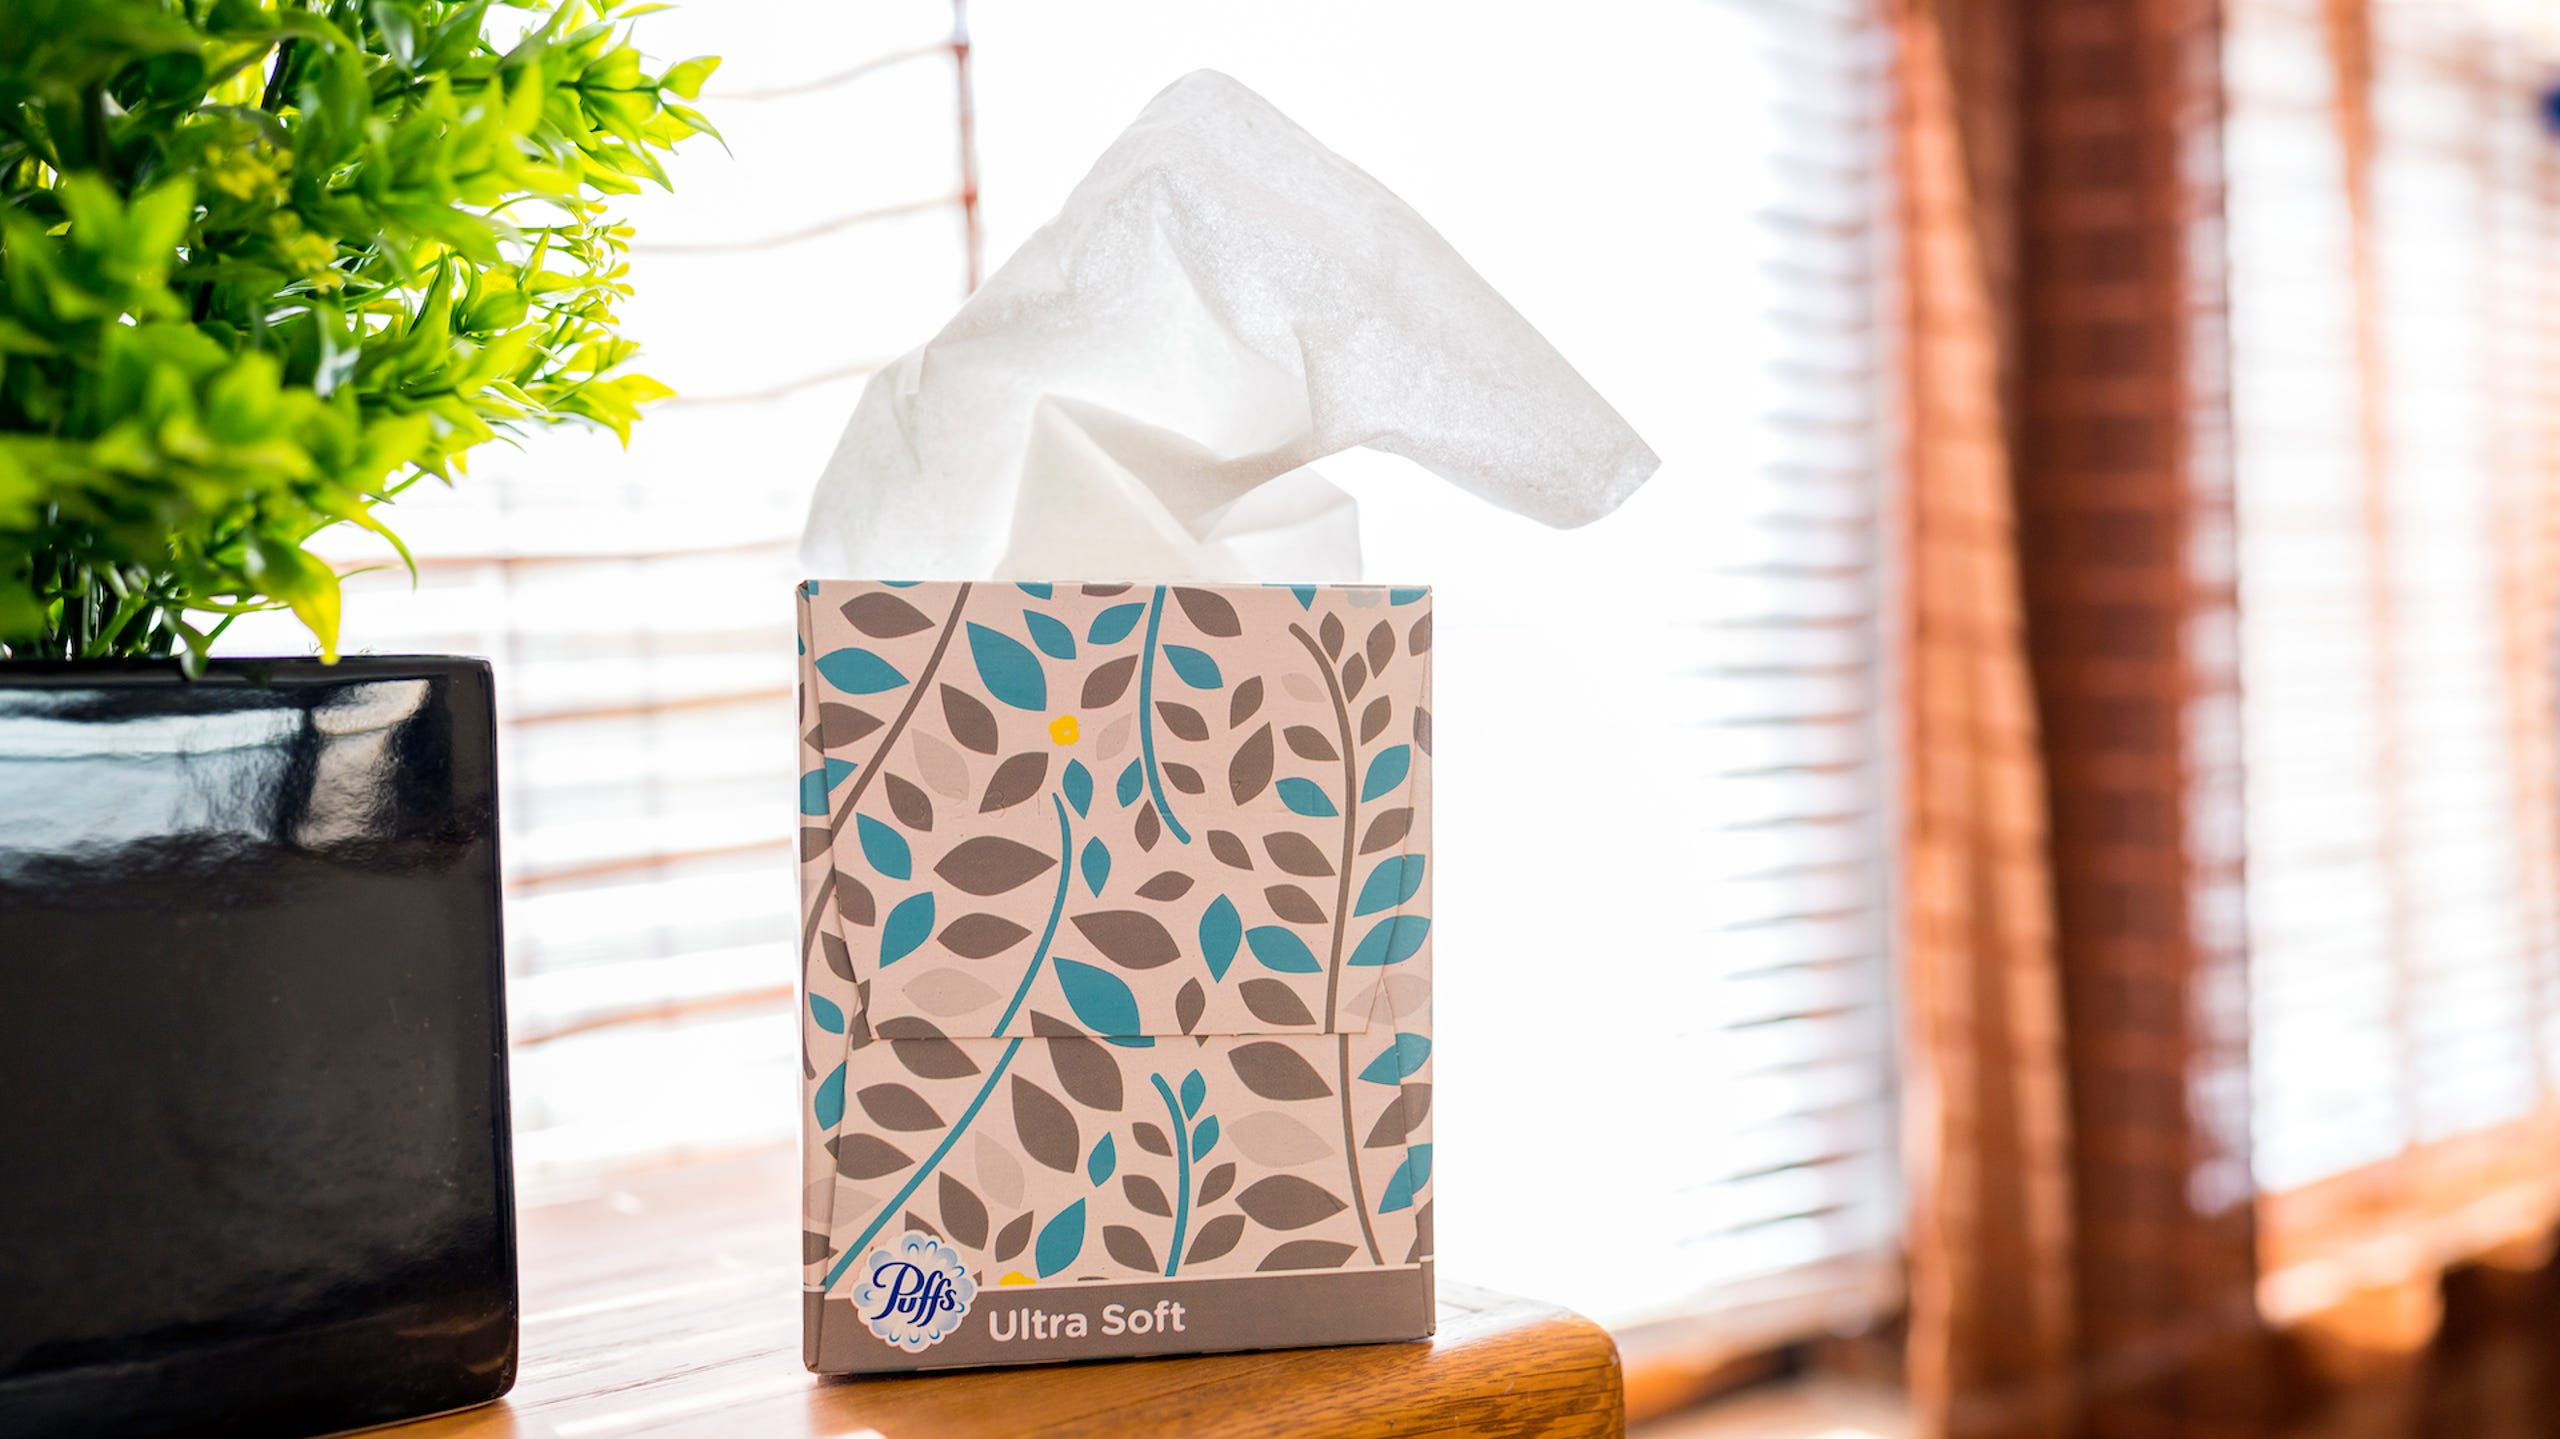 "The only thing worse than having the sniffles is having to use toilet paper to blow your nose when you inevitably run out of tissues. If you don't want to run out and end up irritating your nose this cold and flu season, we recommend this bundle of Puffs Ultra Soft, which are&nbsp;<a href=""https://www.reviewed.com/home-outdoors/best-right-now/the-best-facial-tissues"">the best tissues we tested</a> because of how soft yet durable they were. (<strong><a href=""https://www.amazon.com/Puffs-Strong-Non-lotion-Tissue-Tissues/dp/B072FTWMVD/ref=as_li_ss_tl?ie=UTF8&amp;linkCode=ll1&amp;tag=usatgallery-20&amp;linkId=18dfb61a21e2243df88c92819f7ffdd9&amp;language=en_US"" target=""_blank"">$17.99 on Amazon</a></strong>)"